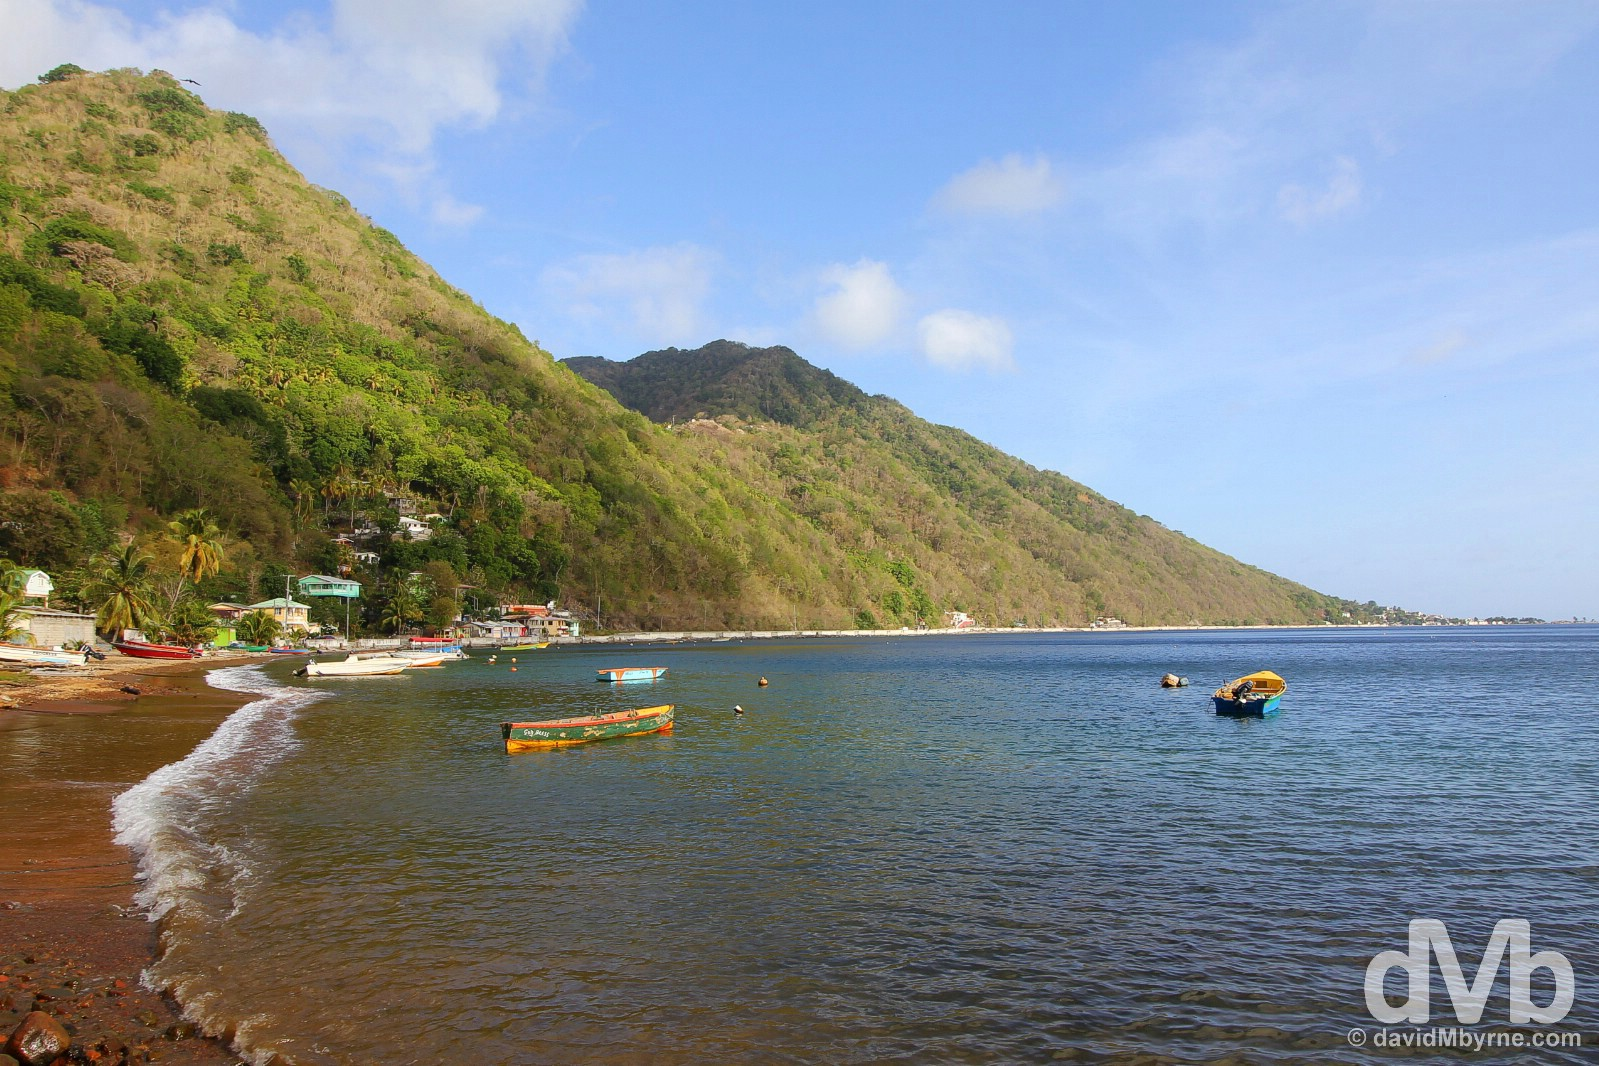 Soufriere Bay, southern Dominica, Lesser Antilles. June 11, 2015.